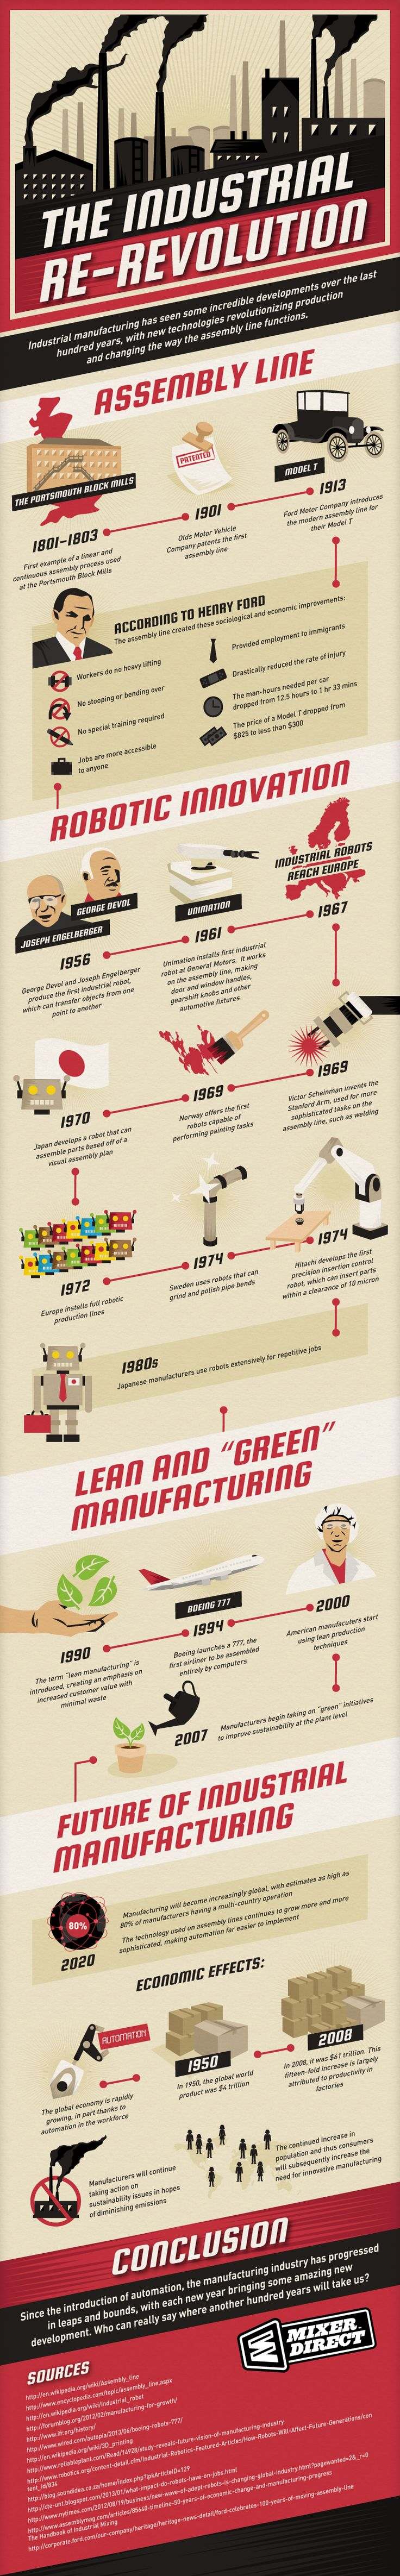 La cuarta revolución industrial ? e-learning , conocimiento en red: The Industrial Re-Revolution #Infographic #Infografía ...